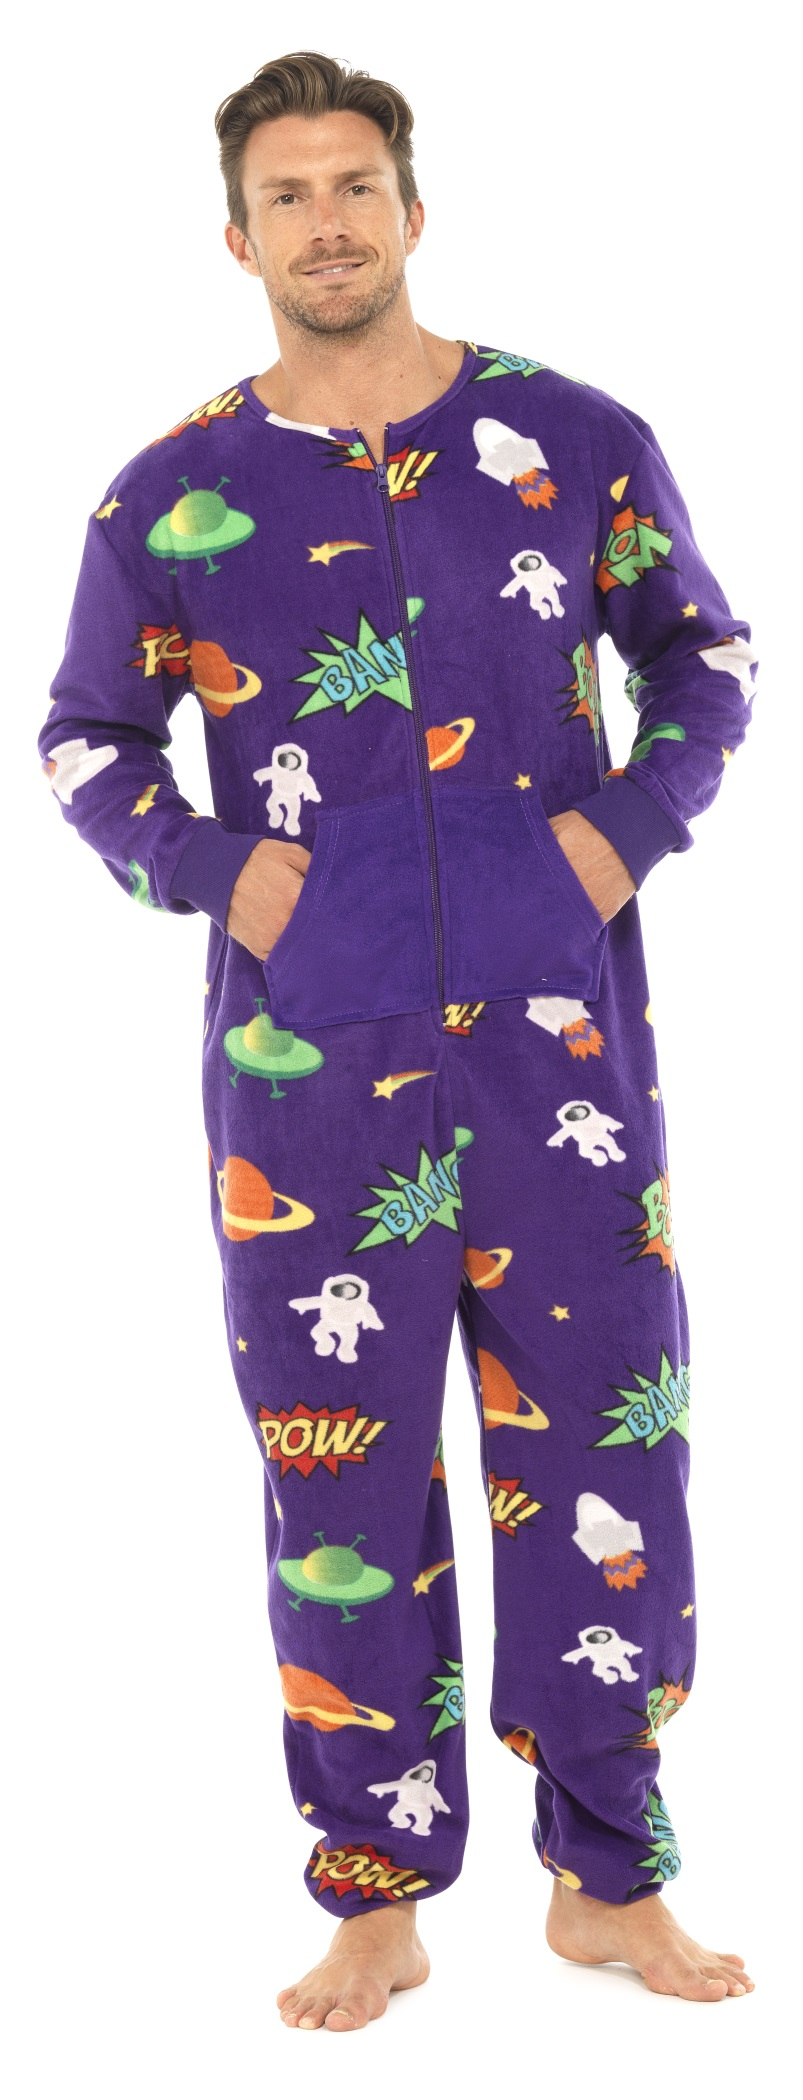 Mens footed pajamas, onesies for men, butt flap pajamas for men and drop seat pajamas onesies with feet. Select from many fabrics, colors and prints, hoodie footed onesies, classic plaid tartan flannels, fleece footed pajamas in solid colors or our popular camouflage footed pajamas for men.